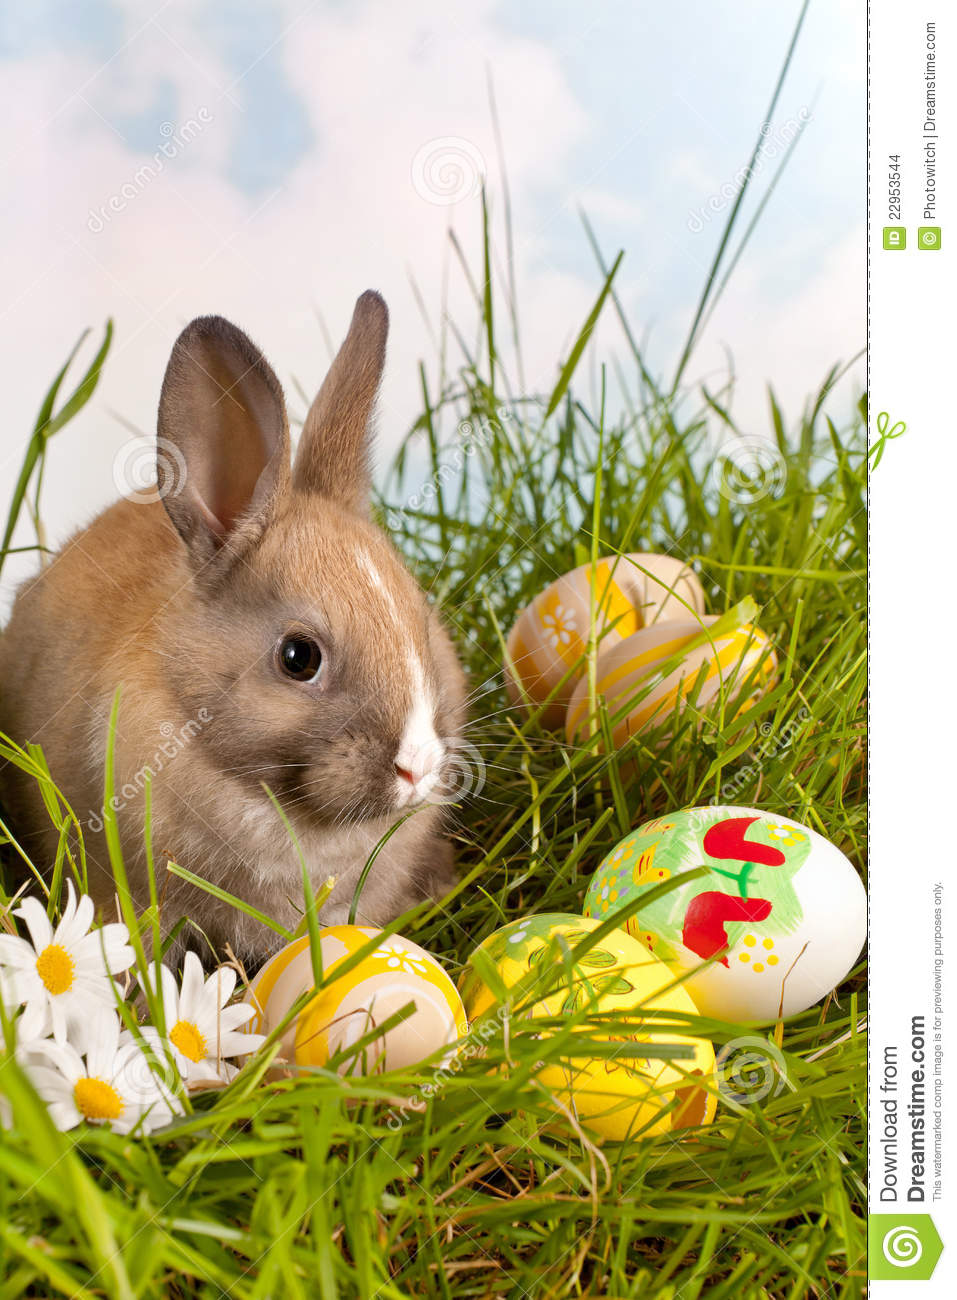 Easter Bunny And Painted Eggs Stock Photo - Image of eggs ...